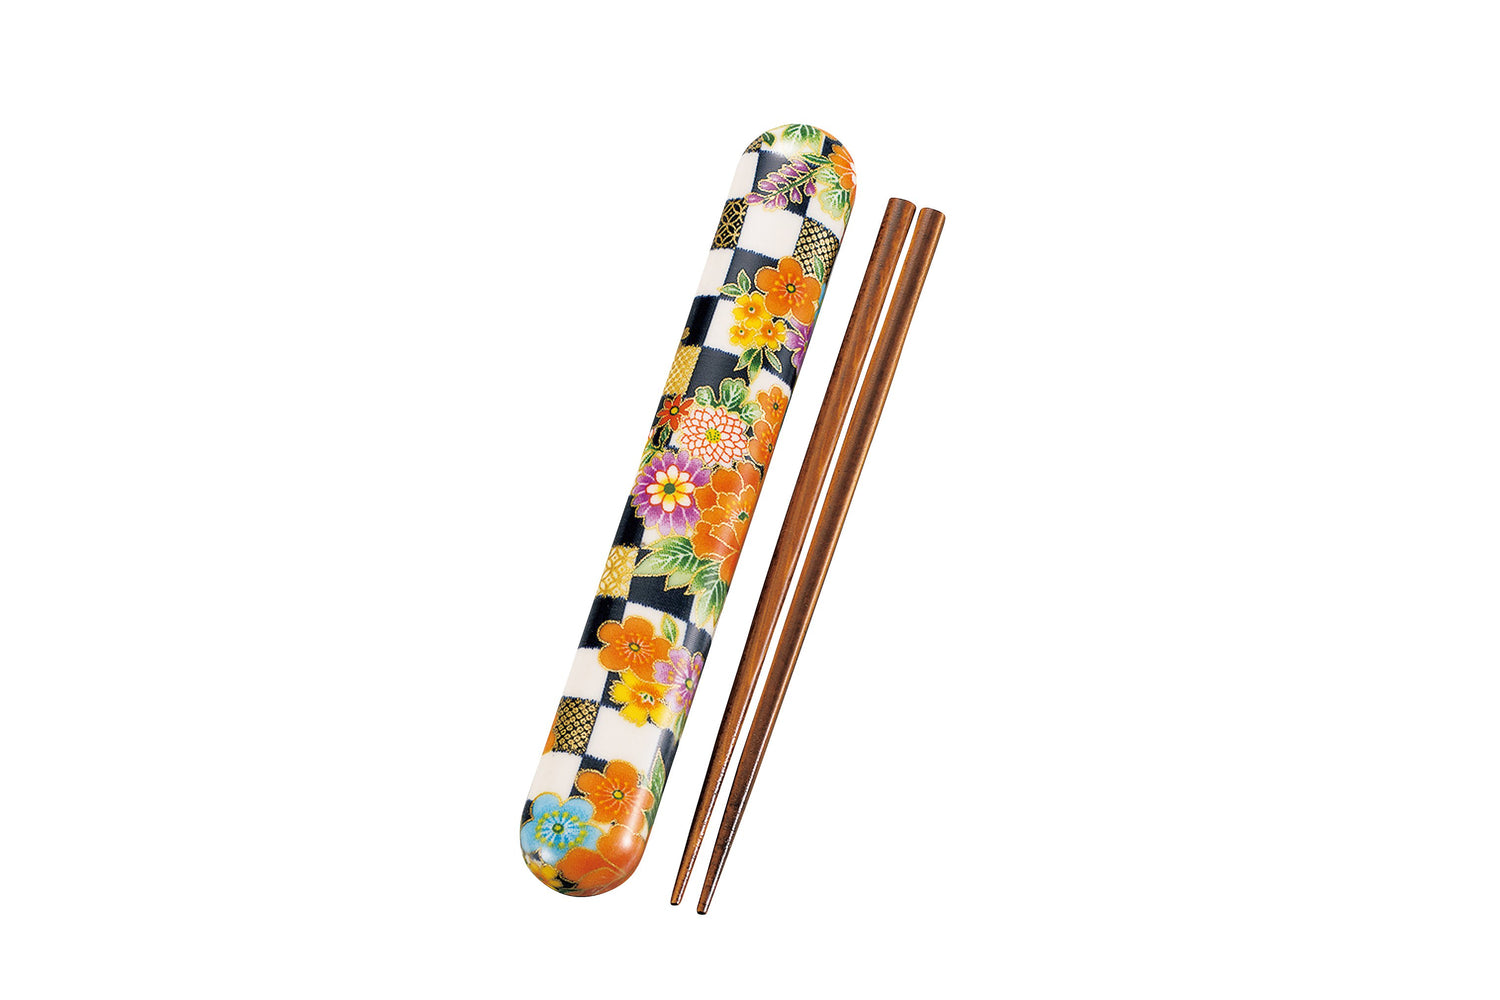 Ichimatsu flower Chopsticks Navy by Hakoya - Bento&co Japanese Bento Lunch Boxes and Kitchenware Specialists